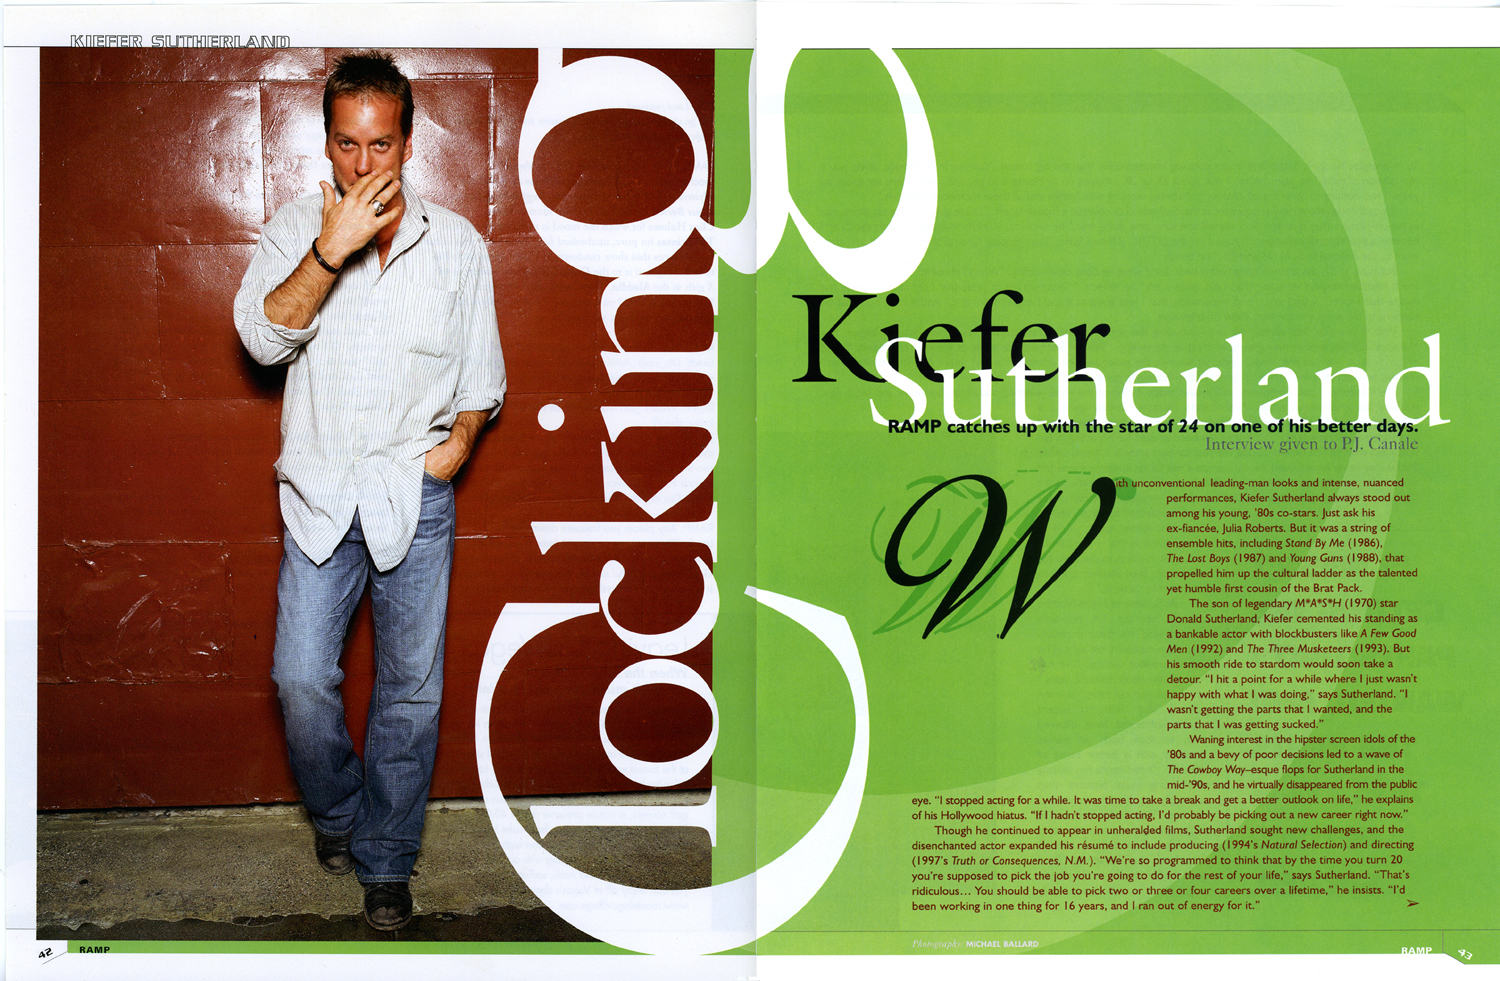 Kiefer Sutherland edit design